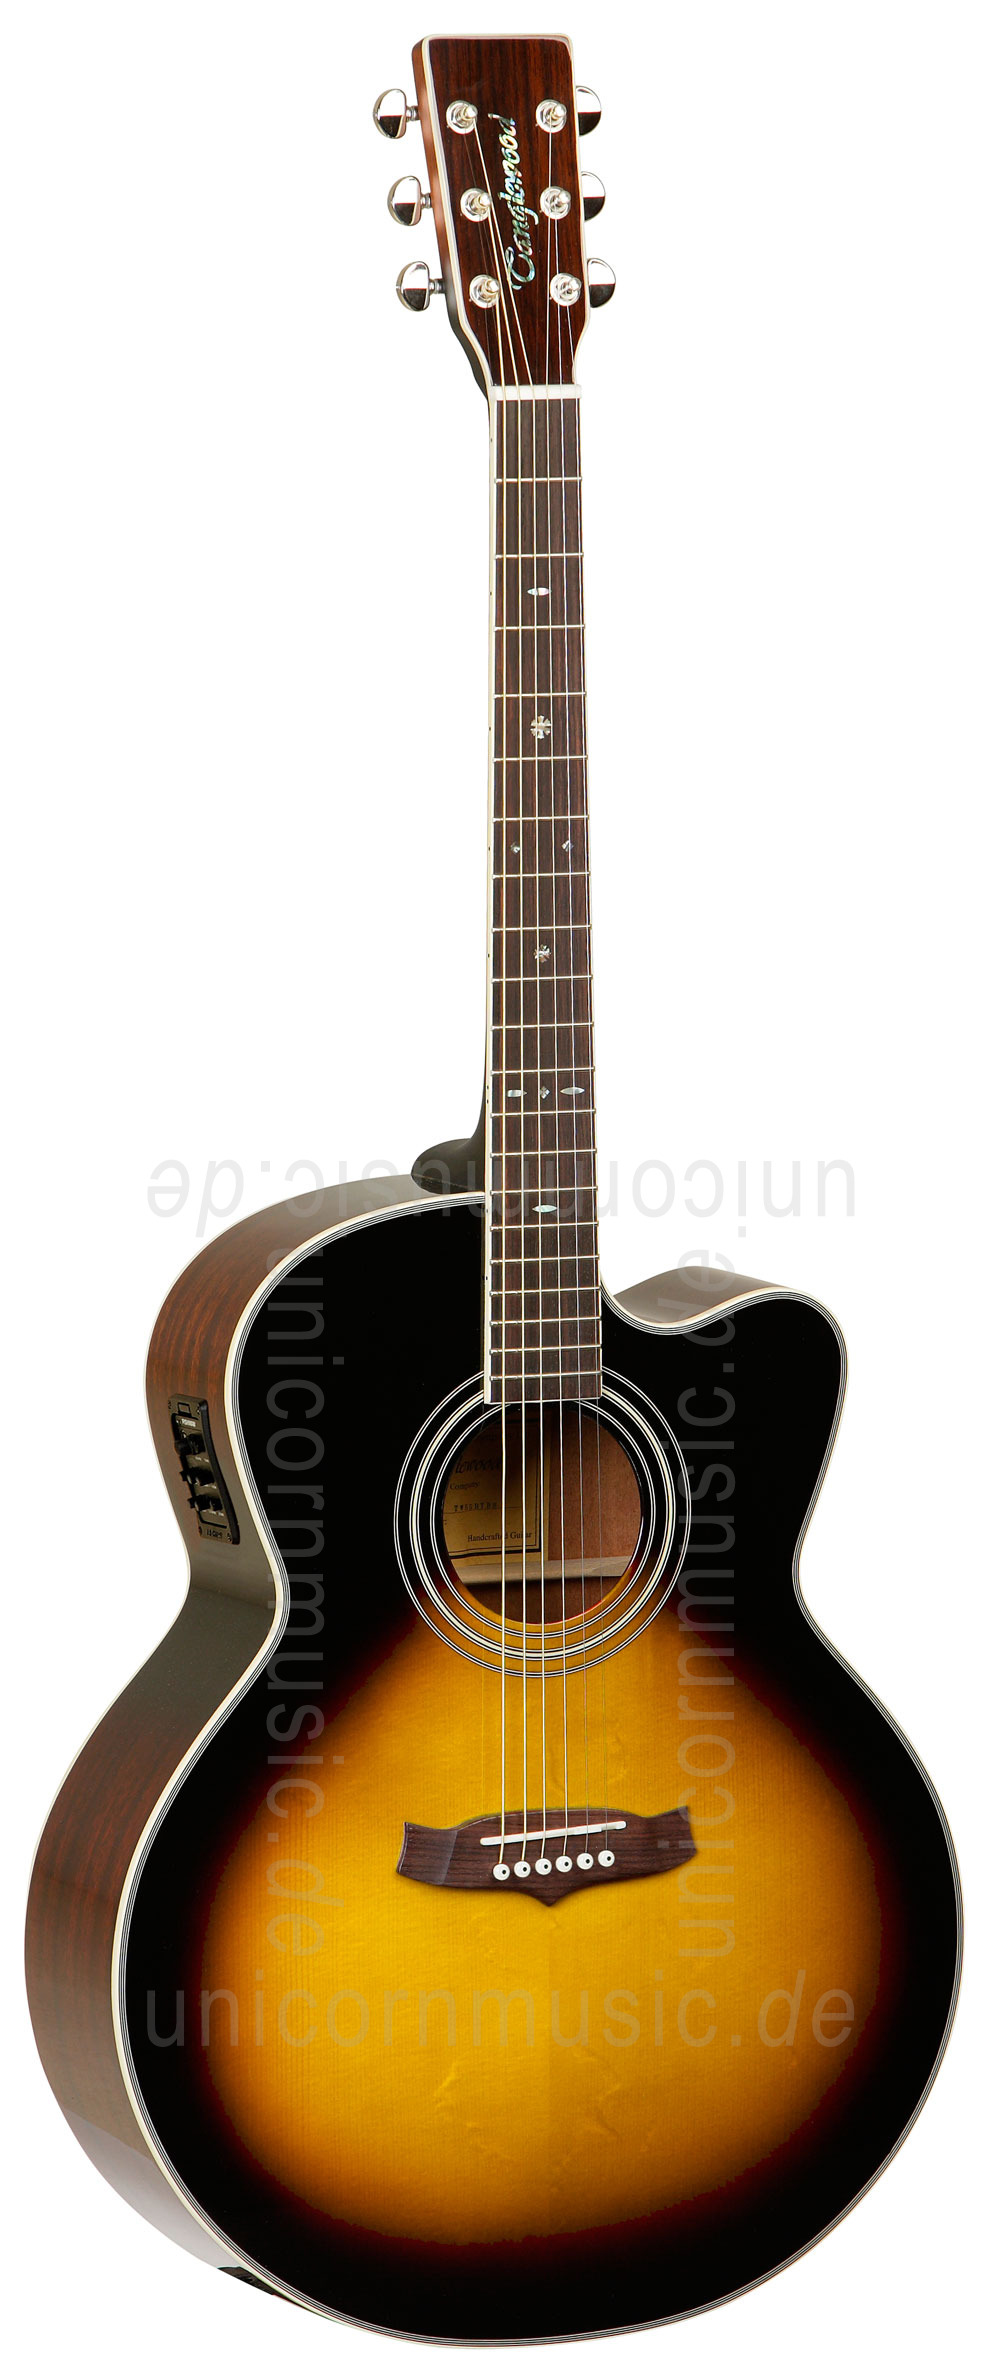 to article description / price Acoustic Guitar TANGLEWOOD TW55/VS E - Sundance Series - Fishman Presys Plus EQ - Cutaway - solid top + back